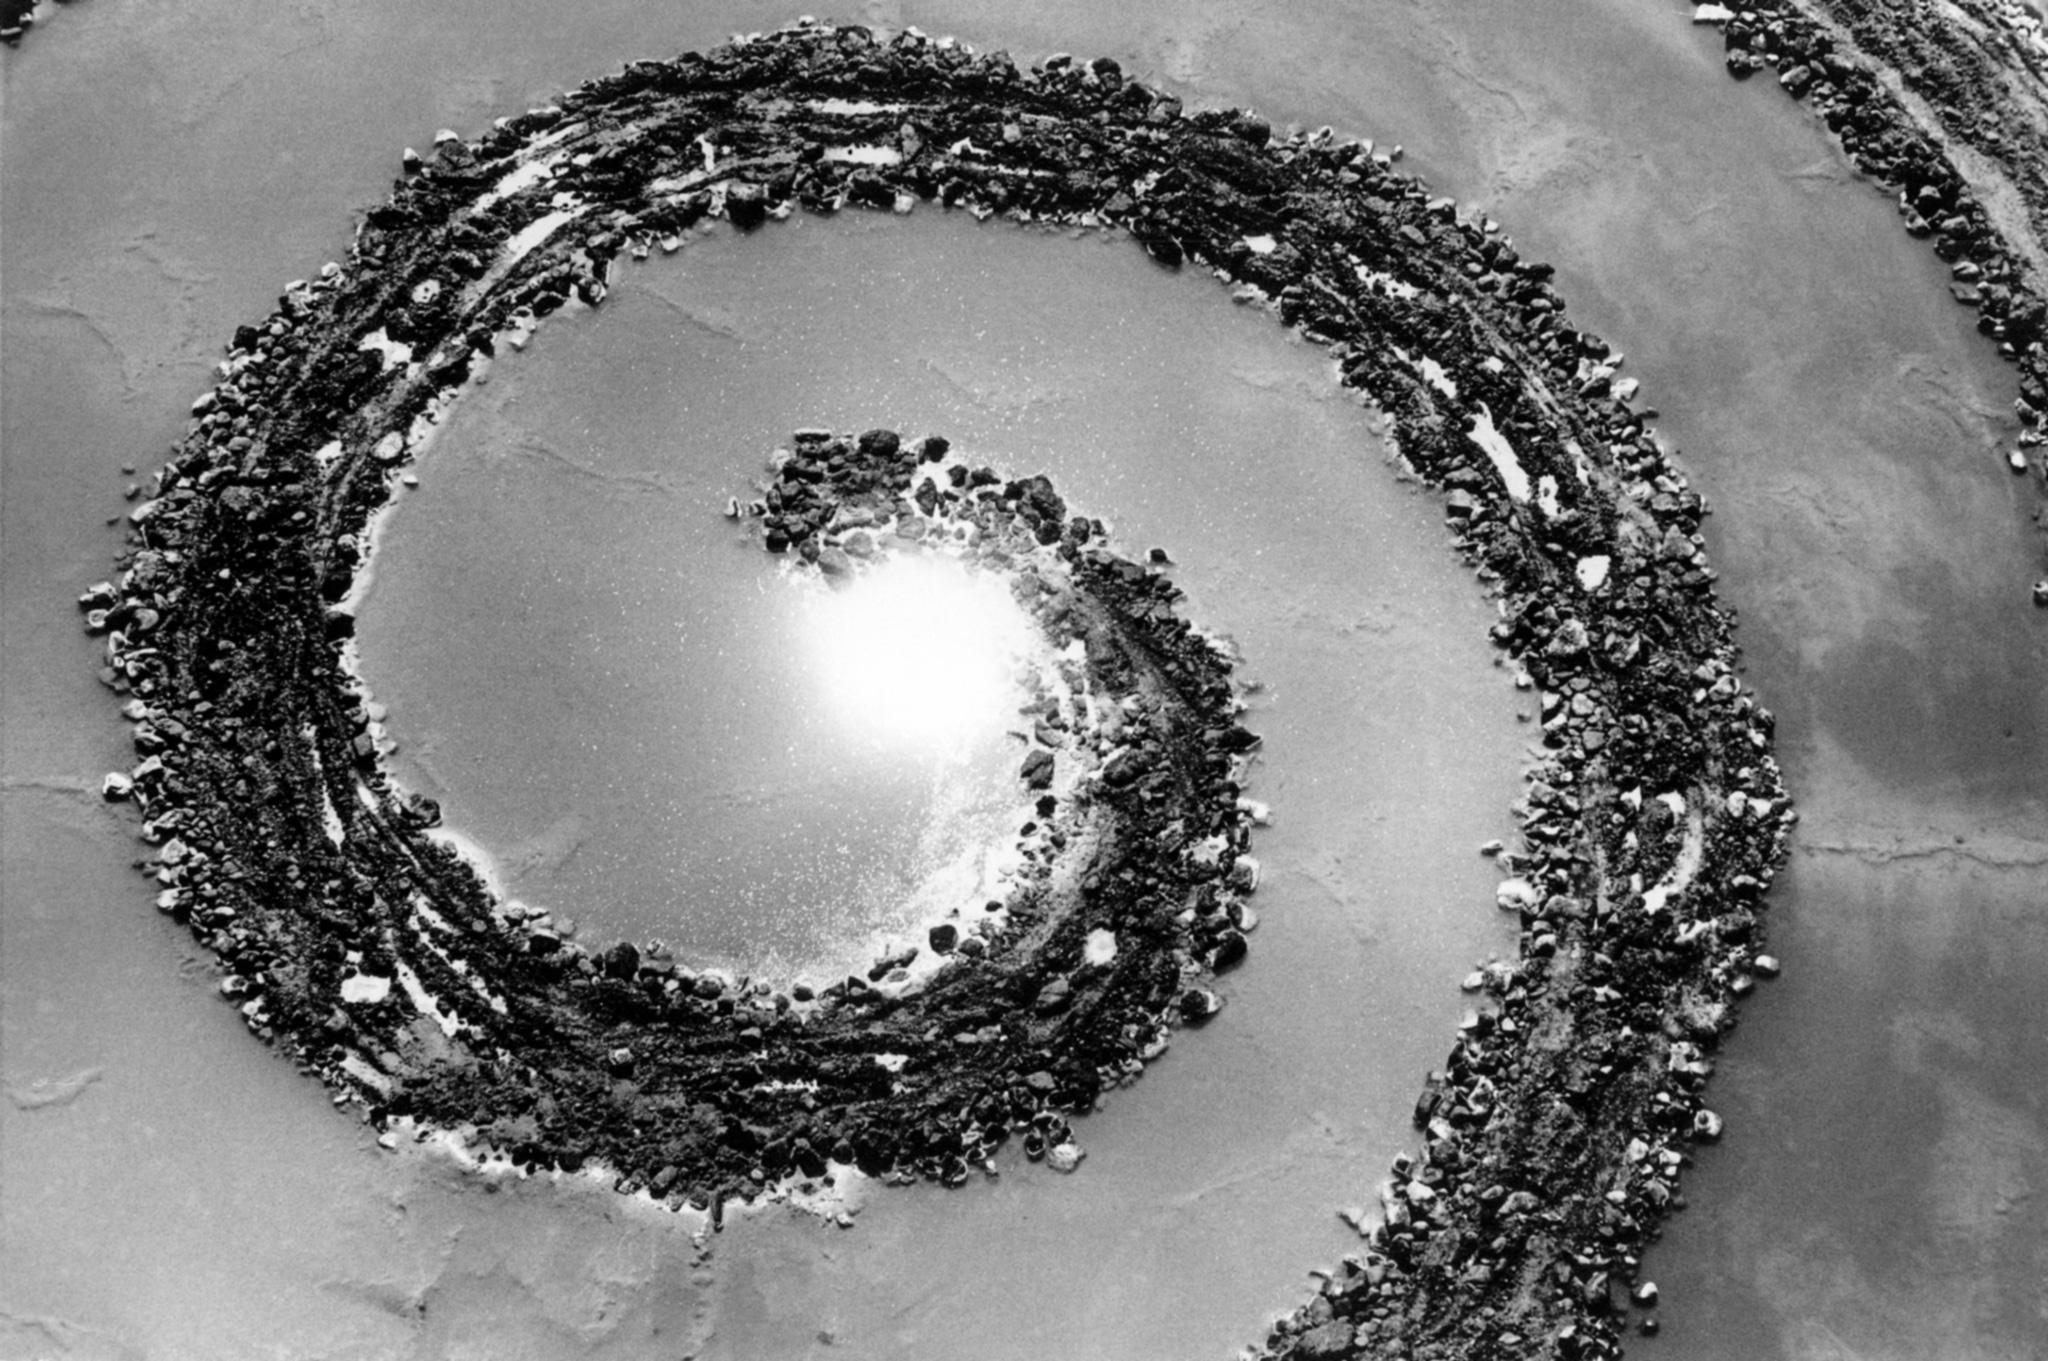 aerial black and white image of a spiral of rocks and earth in water. Sun reflected in water.